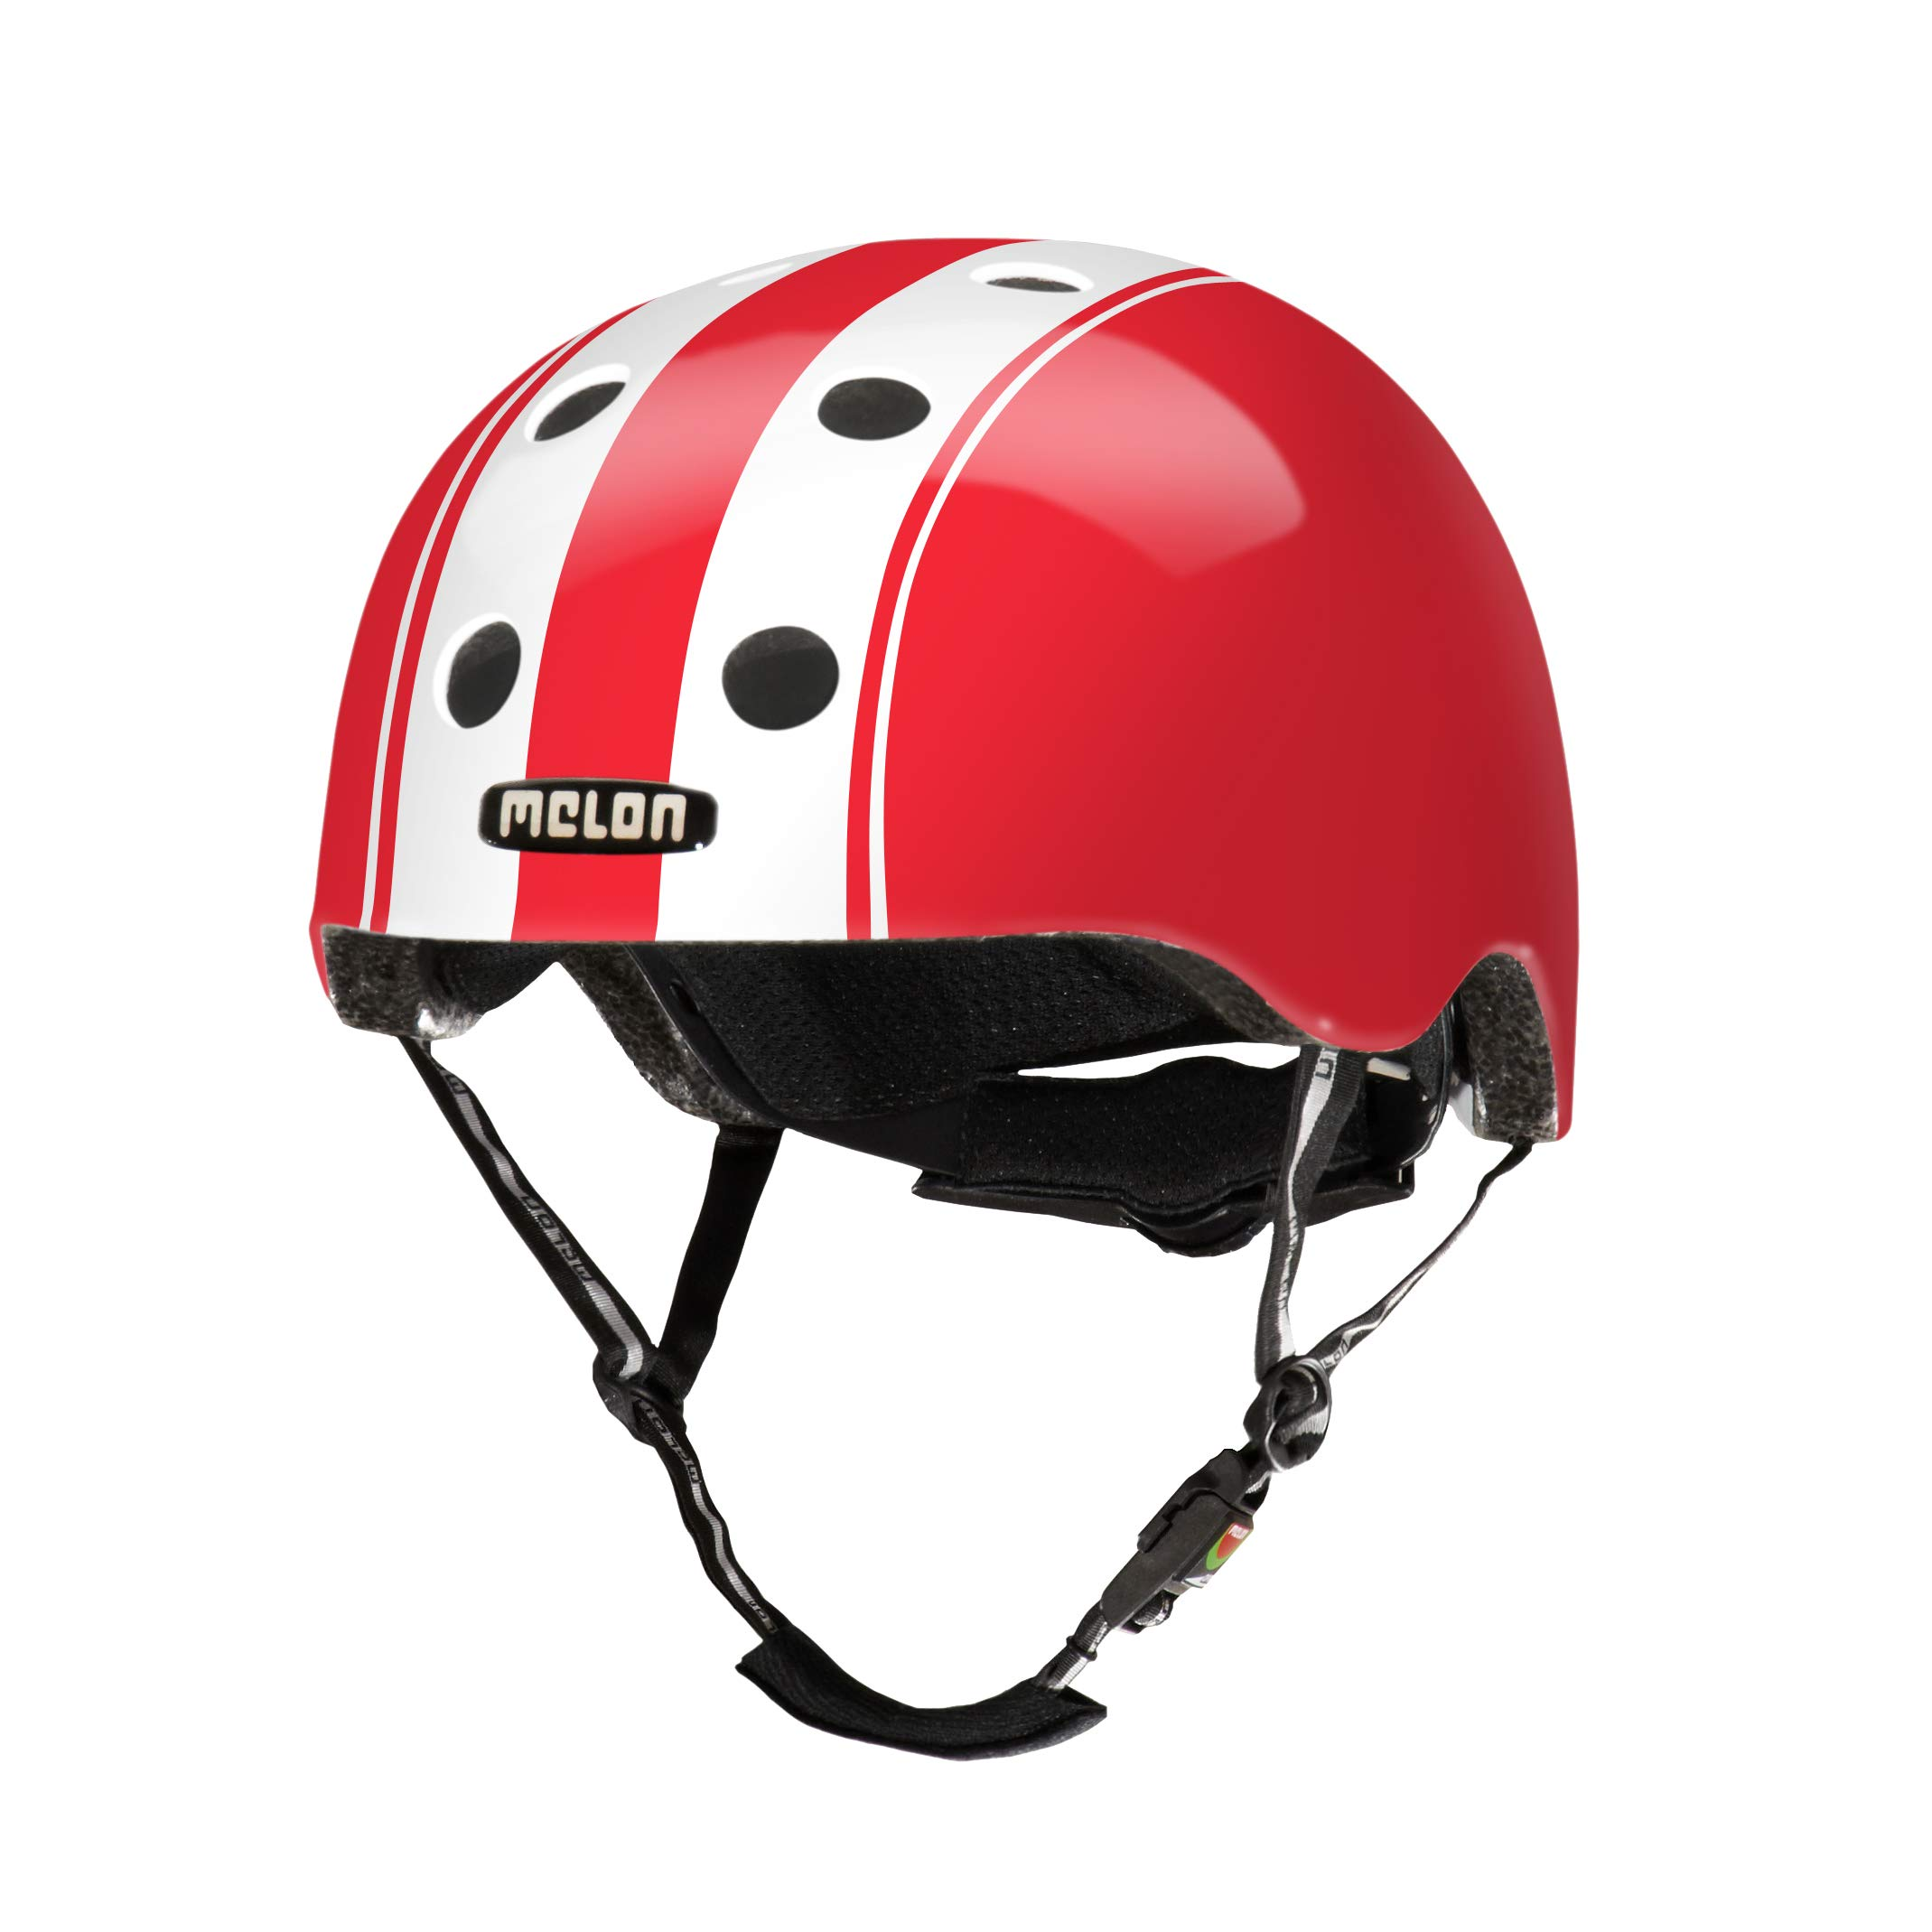 Melon Double White Red Helmet, Red/White, Glossy Finish, Small, 46 - 52cm / 18.25 - 20.5in Head Size